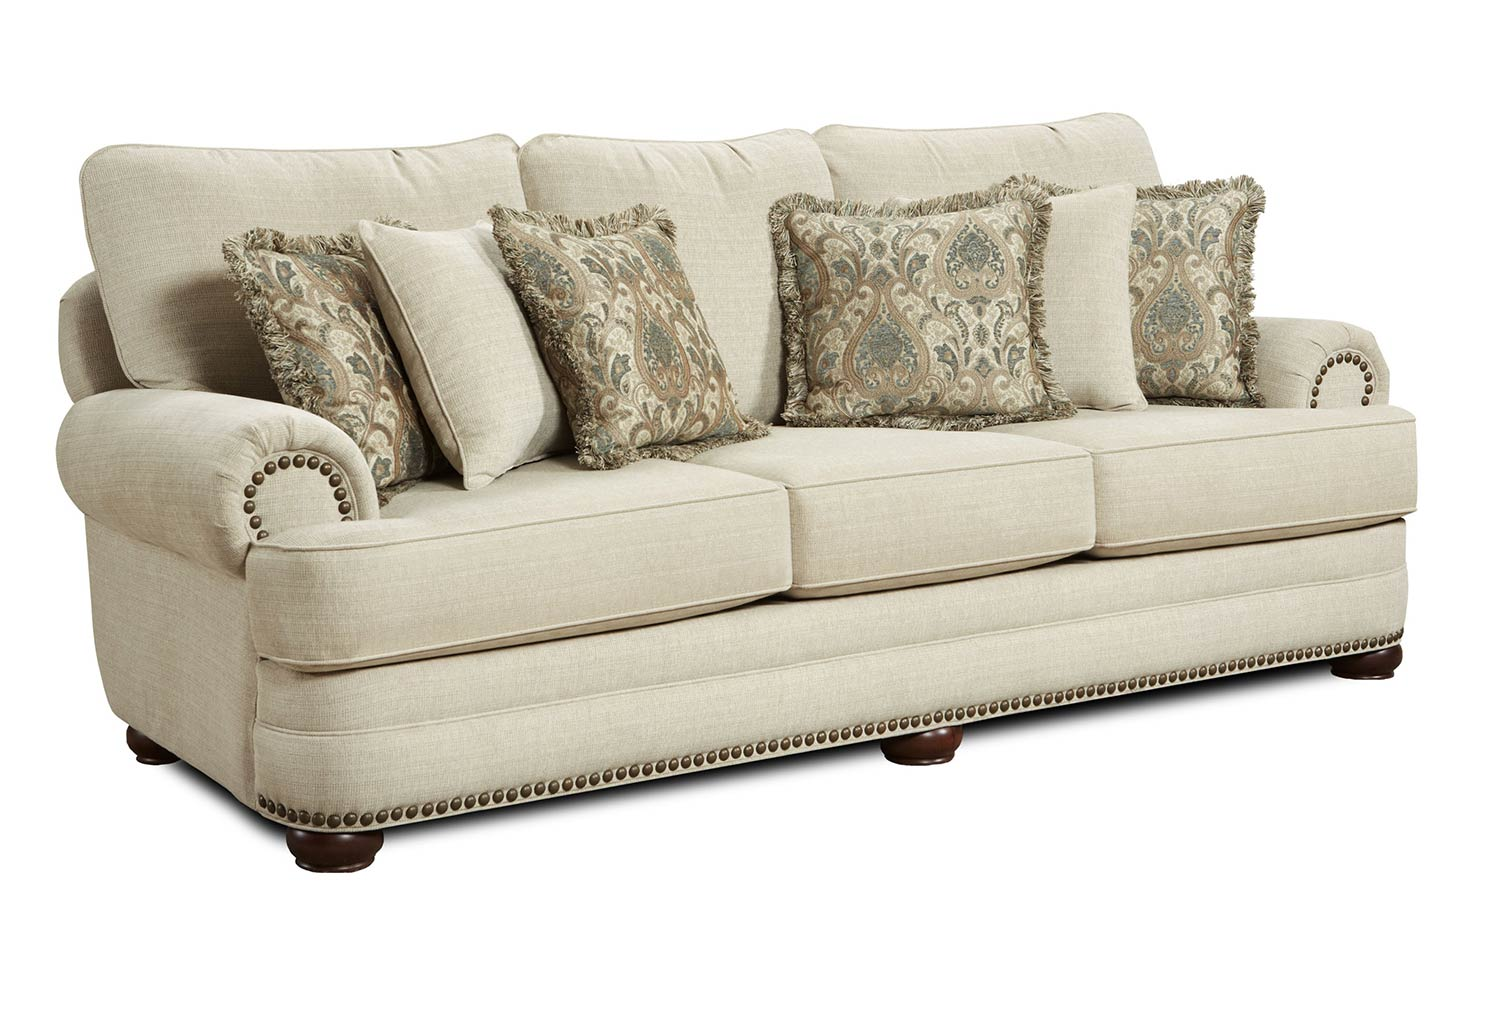 urban home devonshire sofa traditional sofas with skirts chelsea devon set beige chf 632110 nl